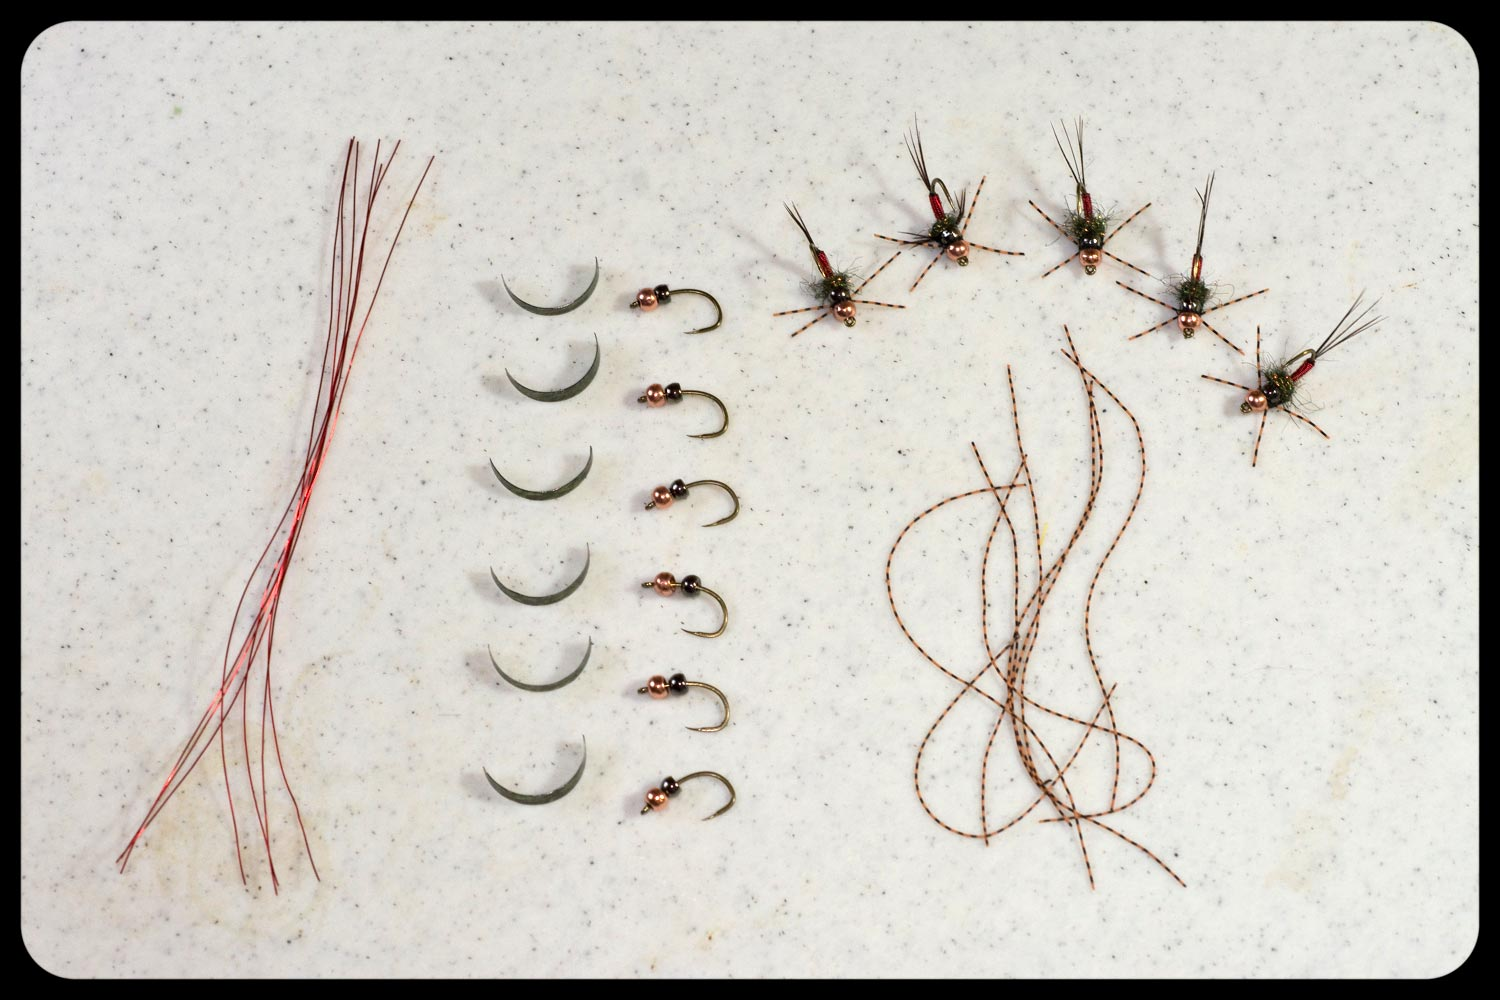 Tie Twice The Flies In Half Time Fly Fishing Gink And Tying A Diagram